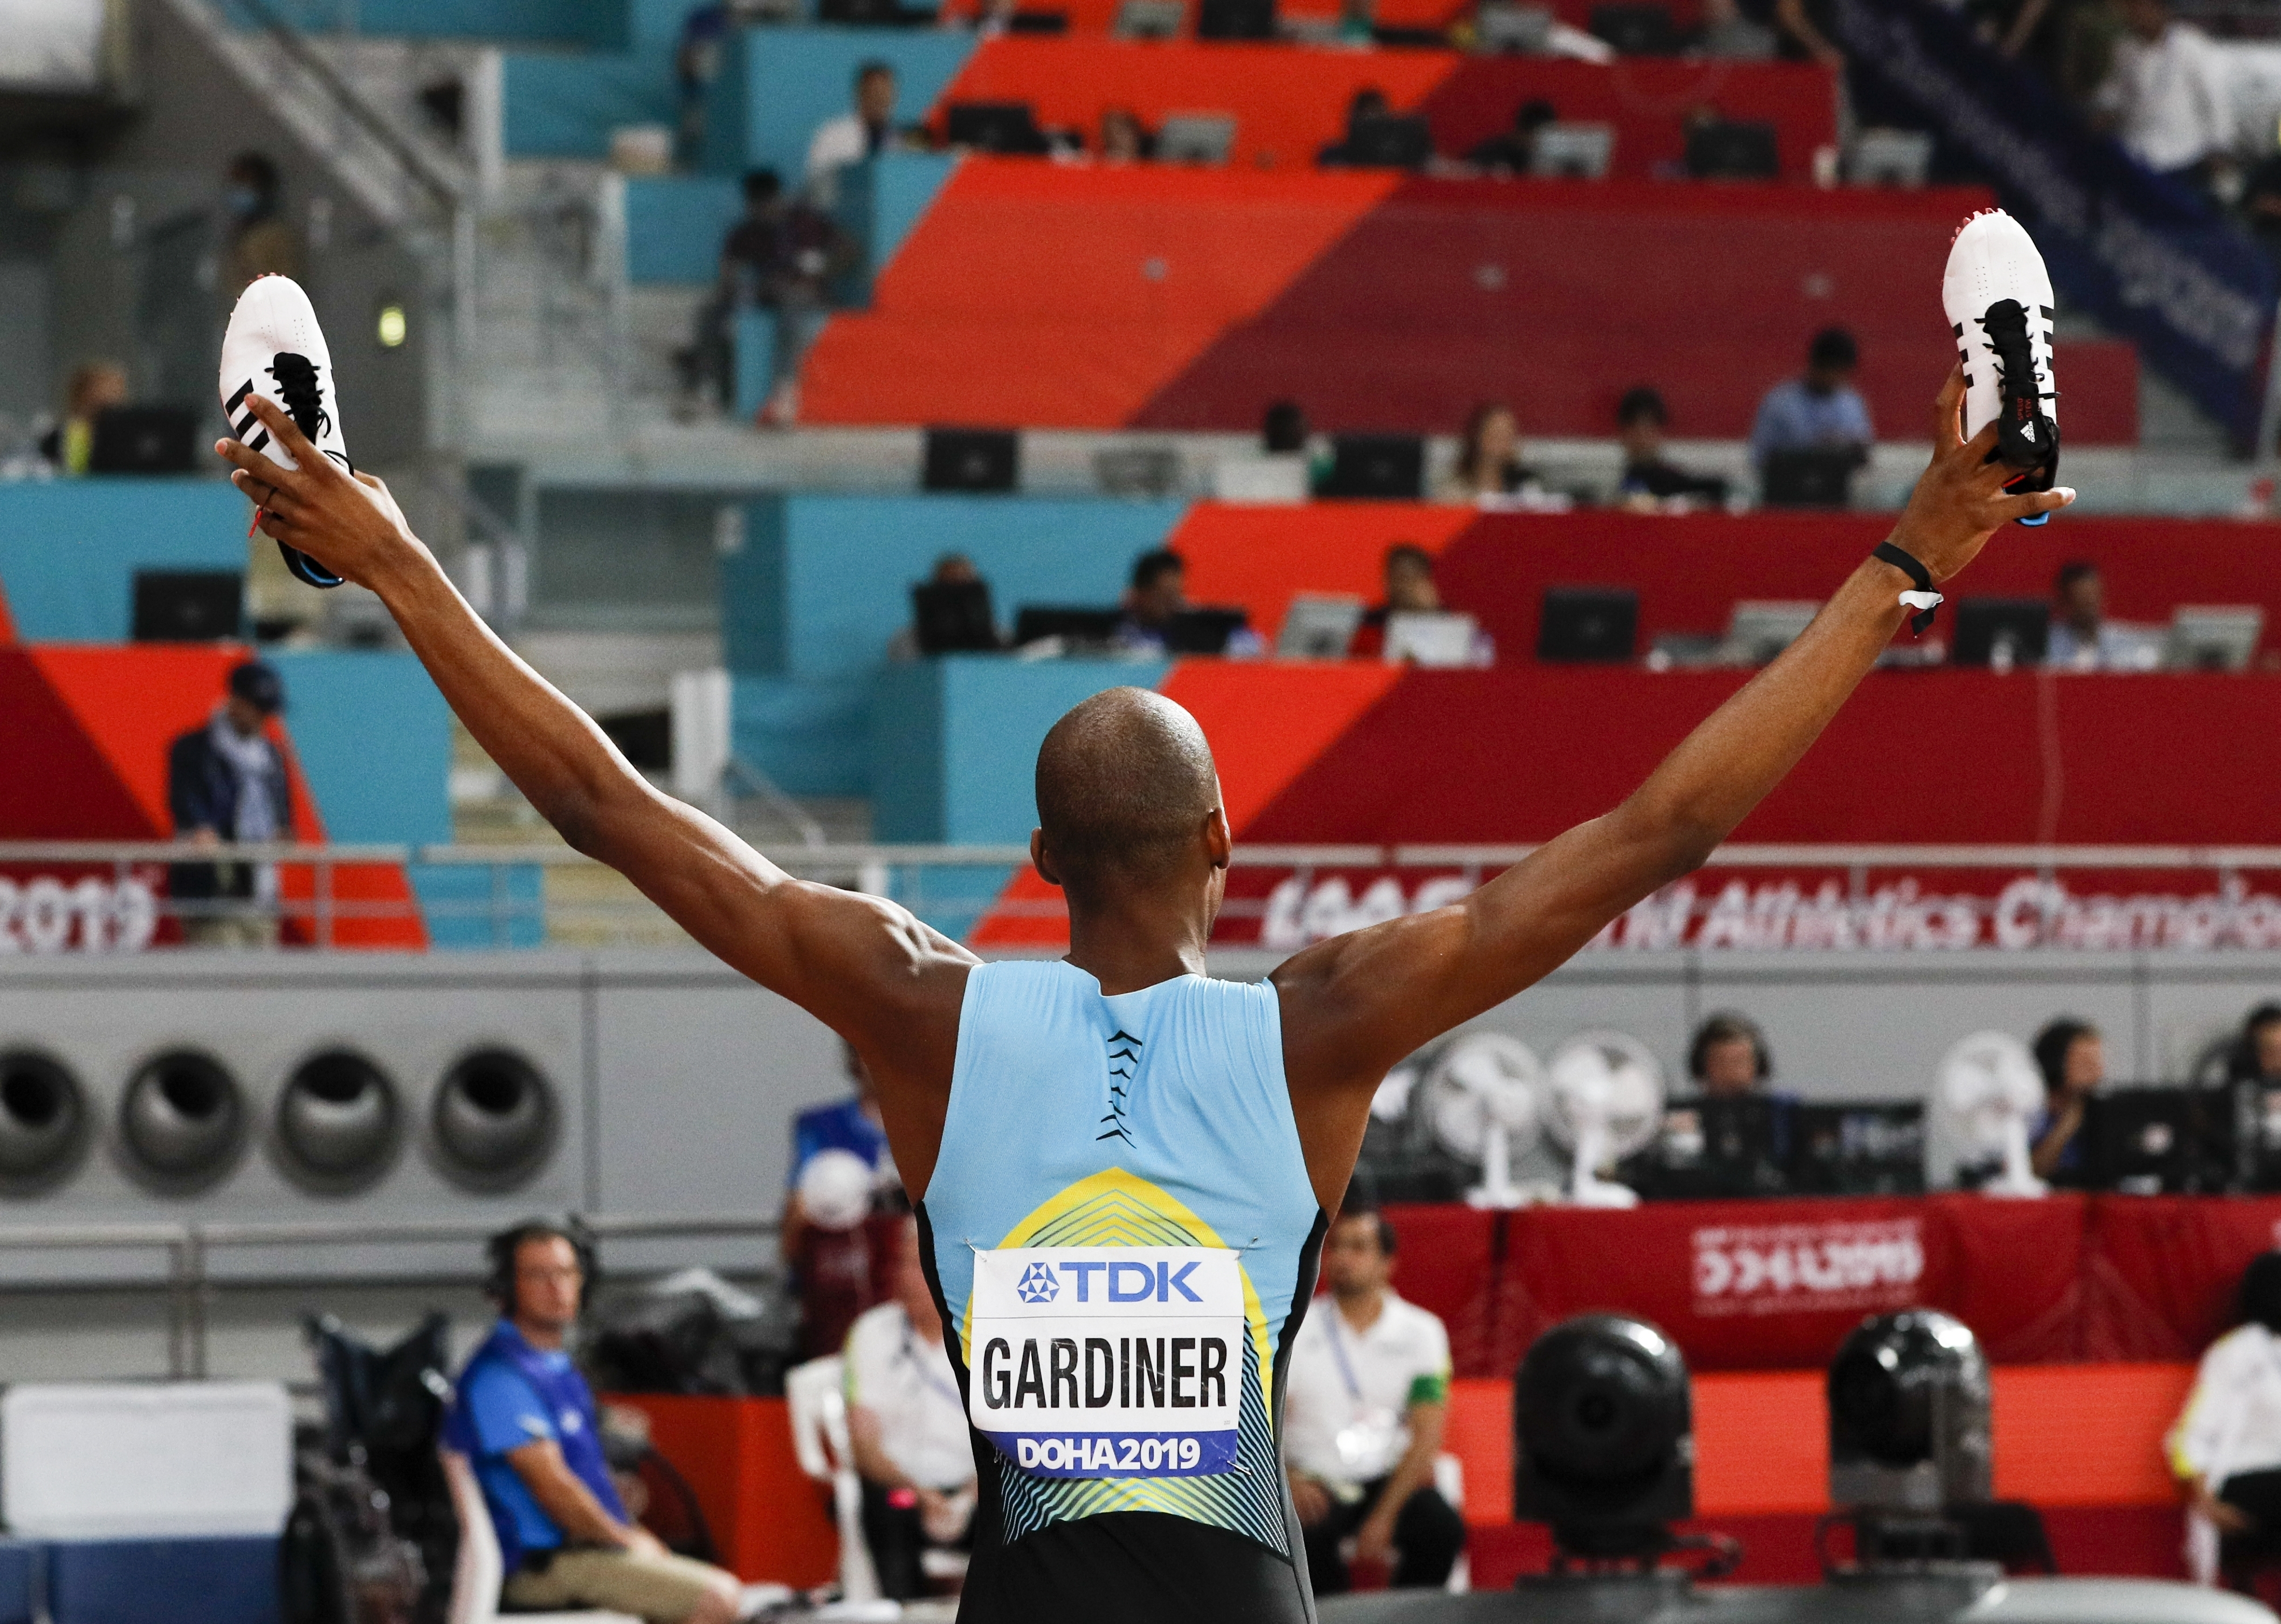 Steven Gardiner, of Bahamas, reacts after winning the men's 400 meter finals at the World Athletics Championships in Doha, Qatar, Friday, Oct. 4, 2019. (AP Photo/Hassan Ammar)